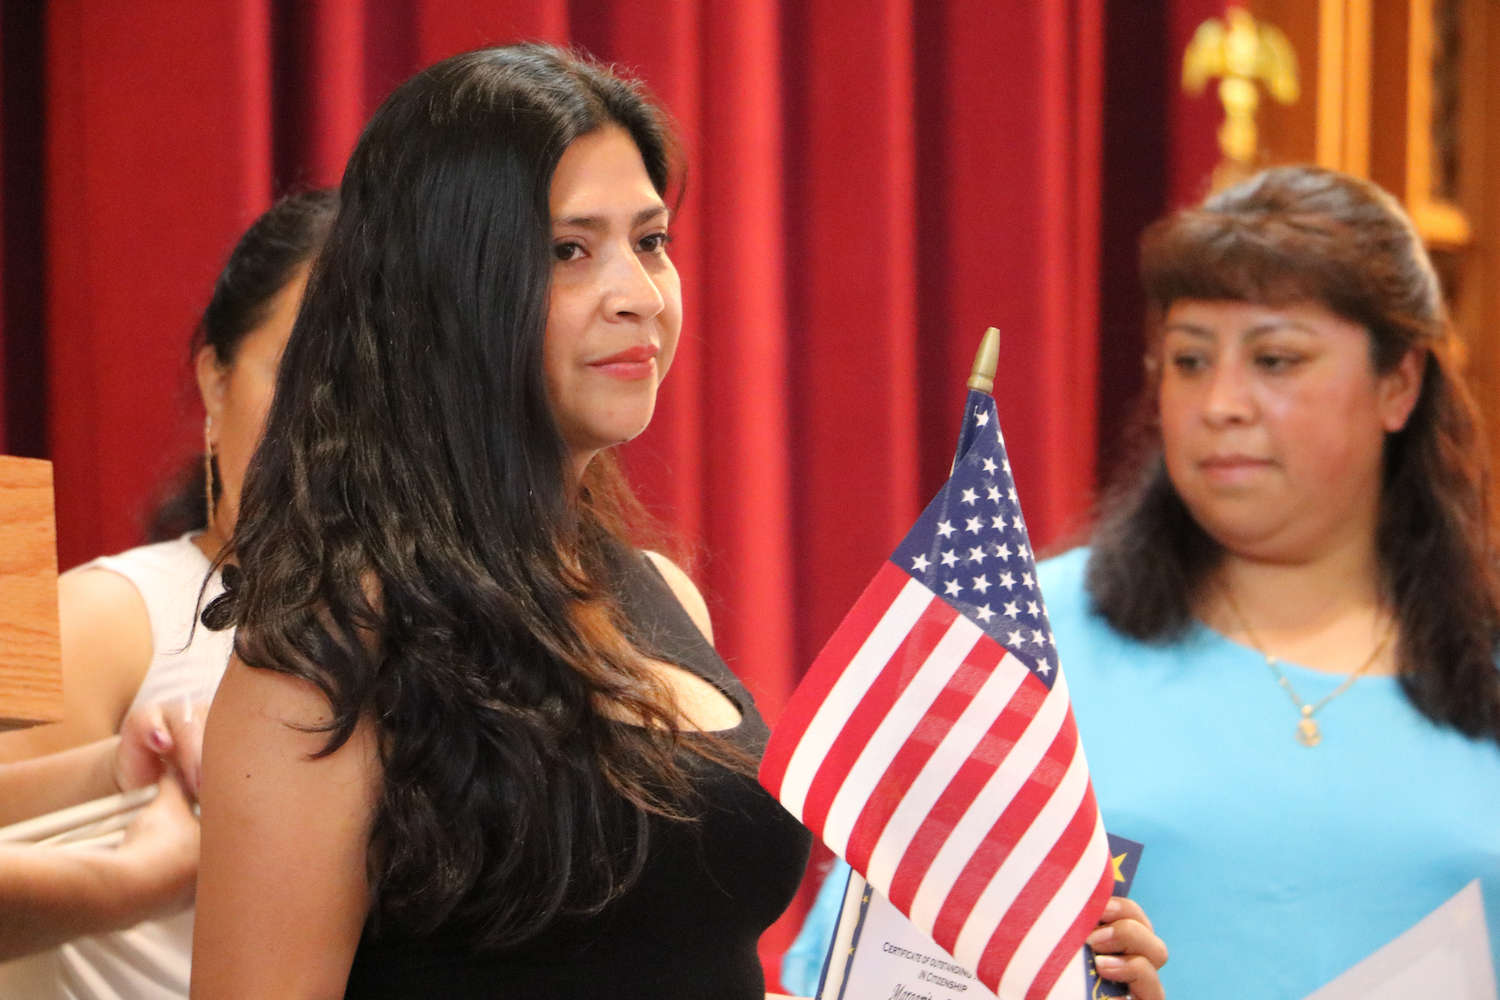 student at citizenship ceremony